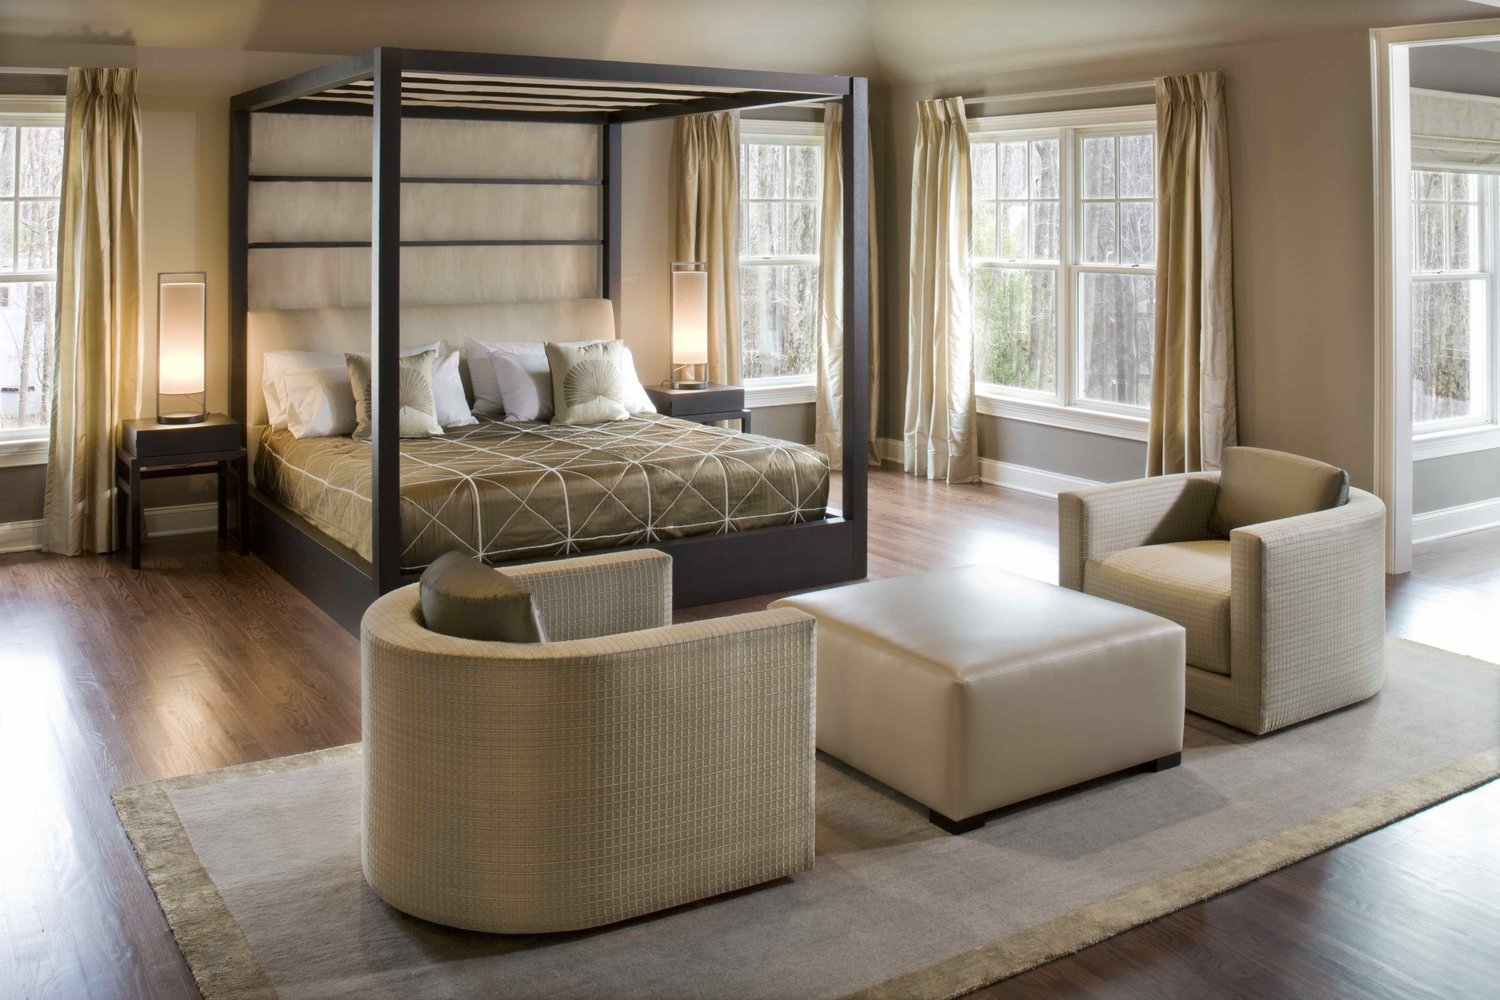 Aguirre Design - Modern Canopy Bed